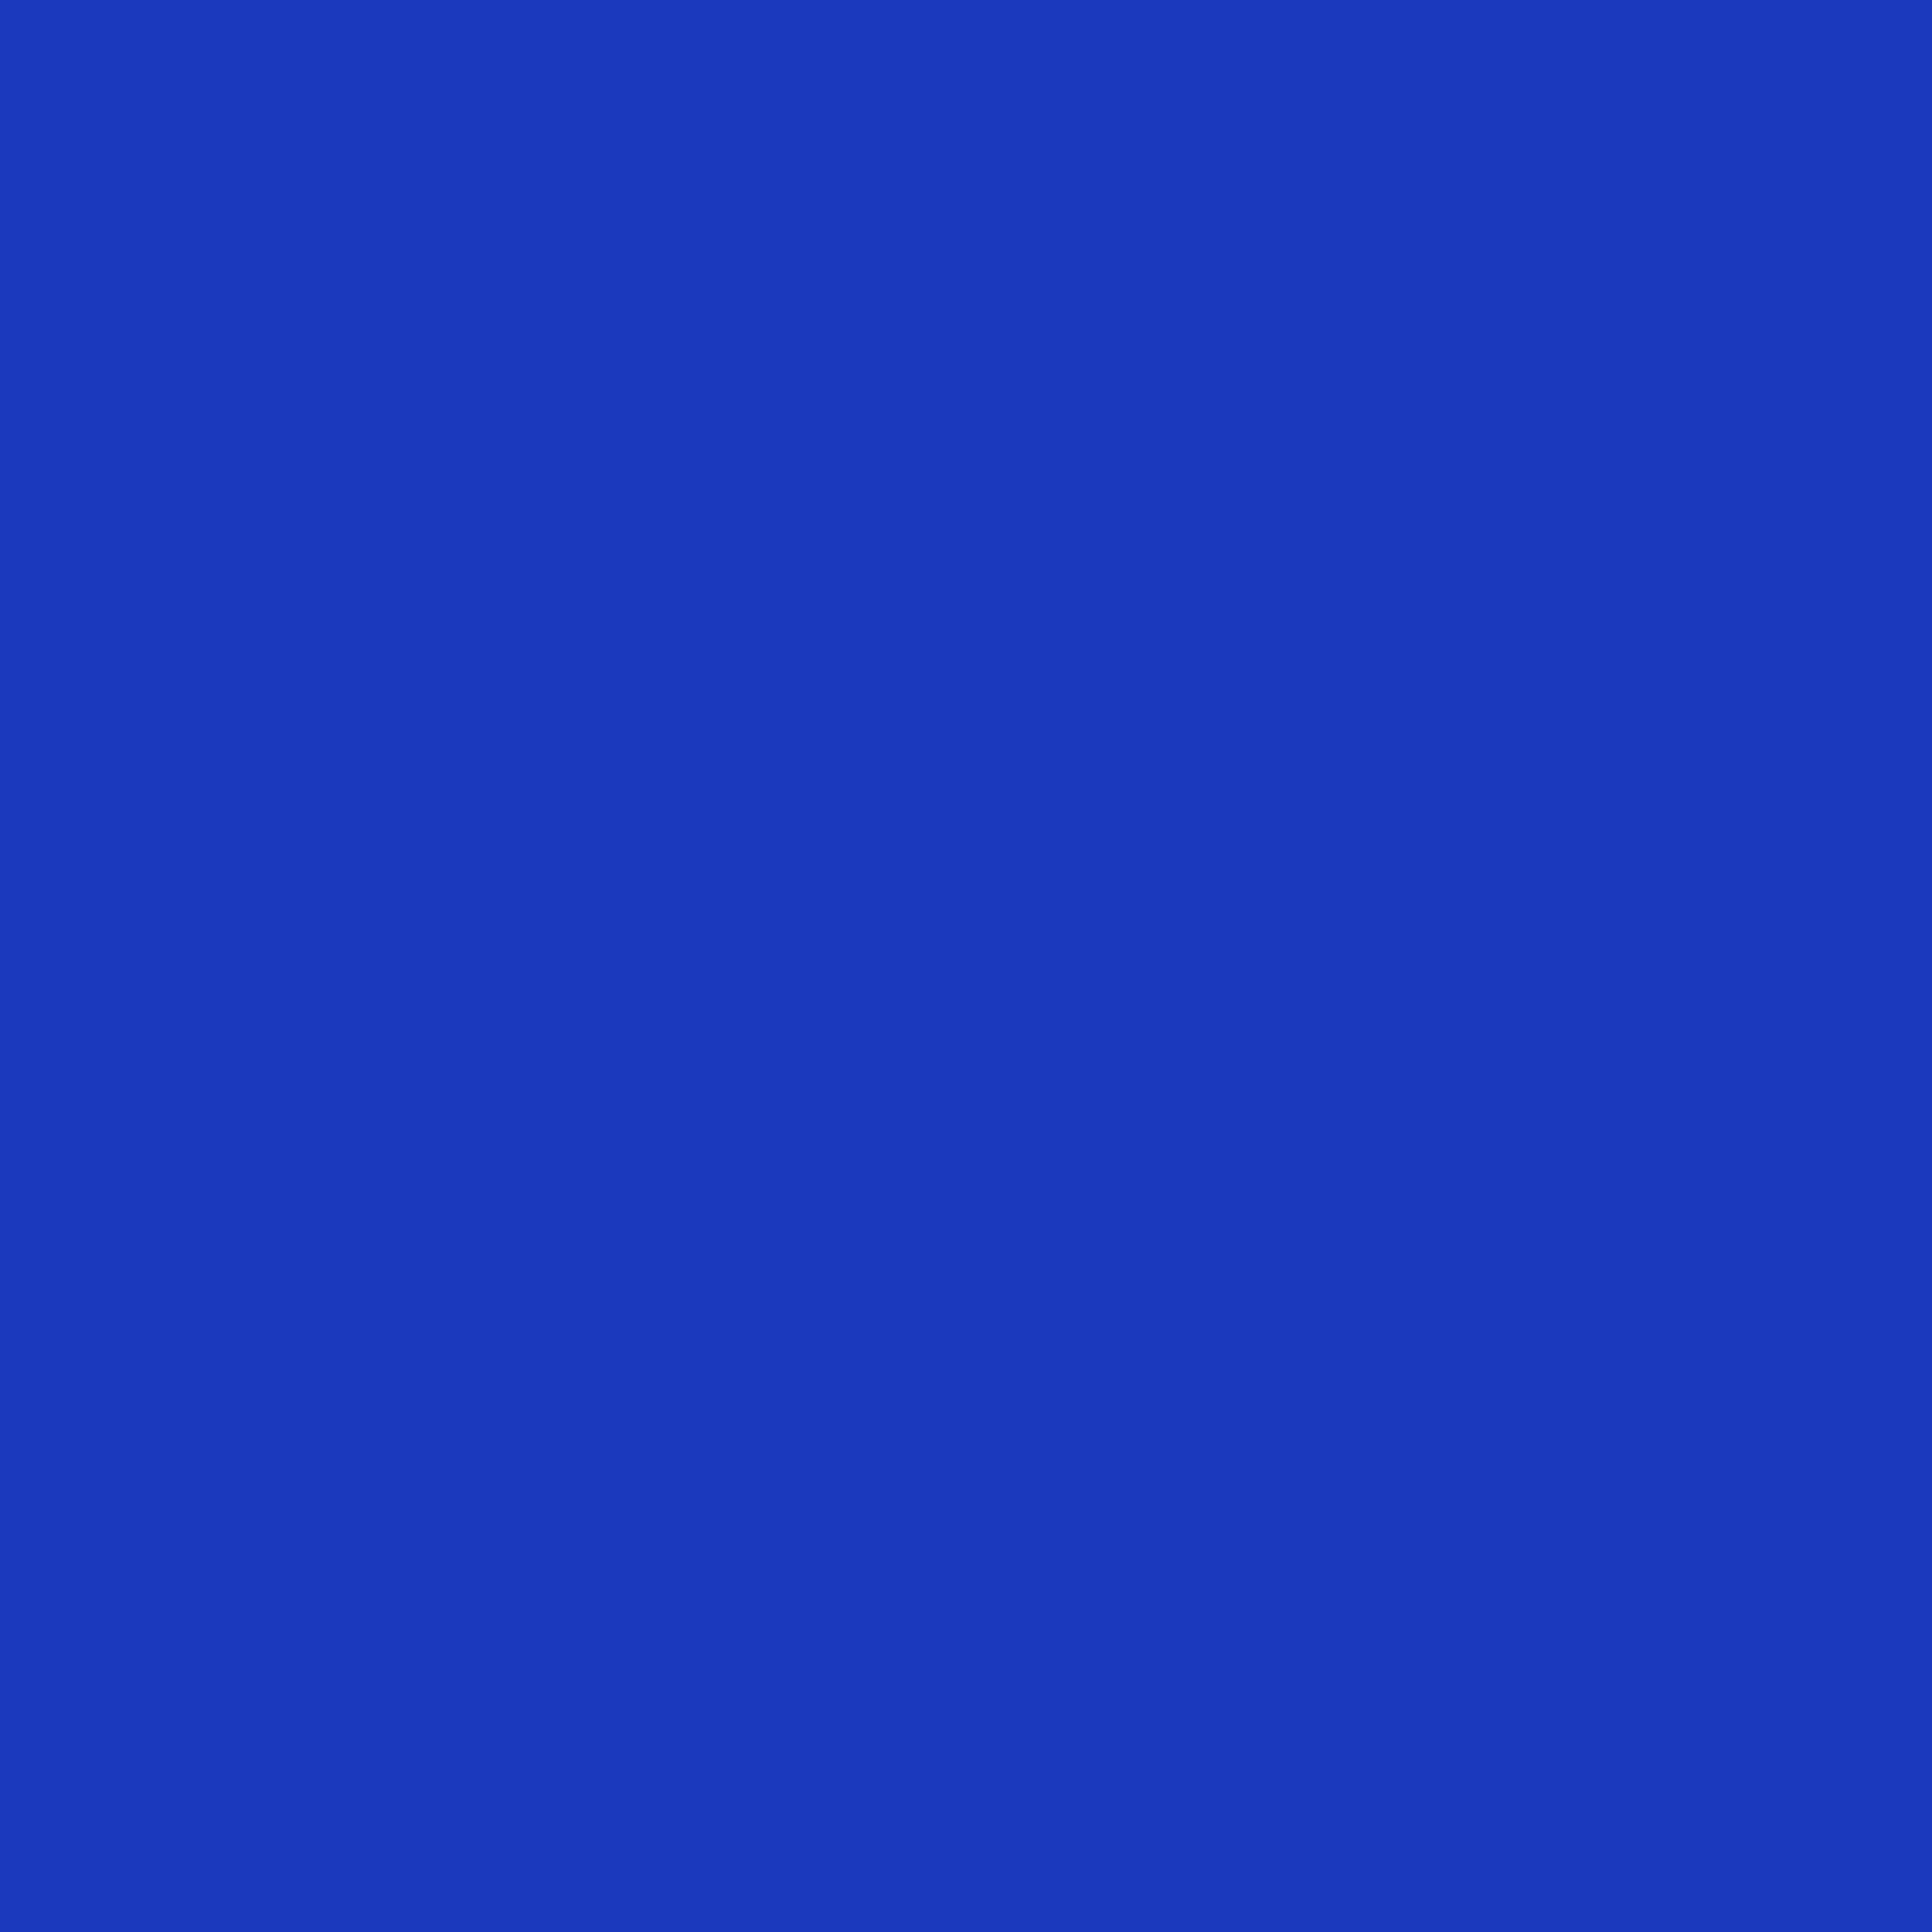 2732x2732 Persian Blue Solid Color Background